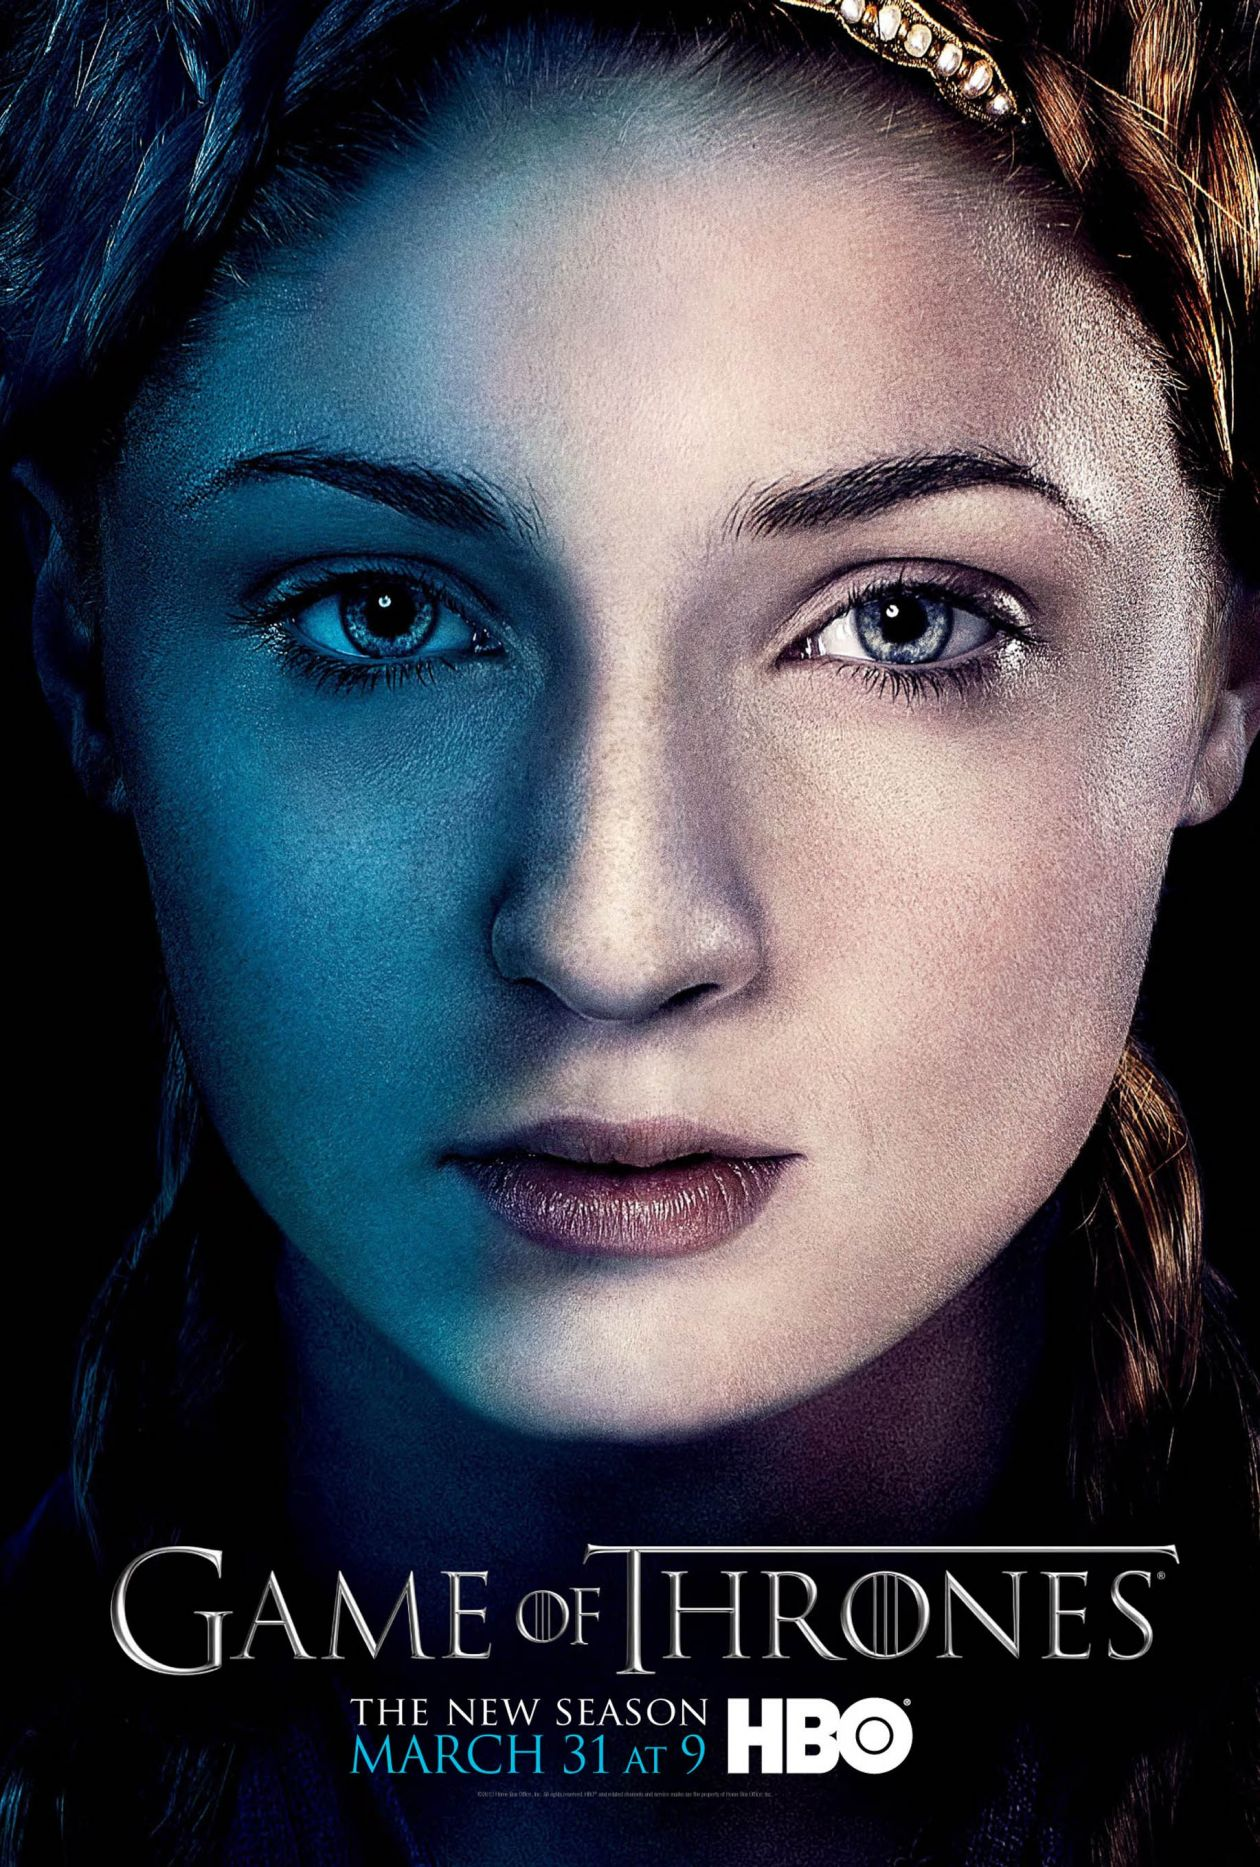 Sophie Turner actress | Game of Thrones / Sansa Stark SEASON 3 2013 SERIES POSTER AFFICHE